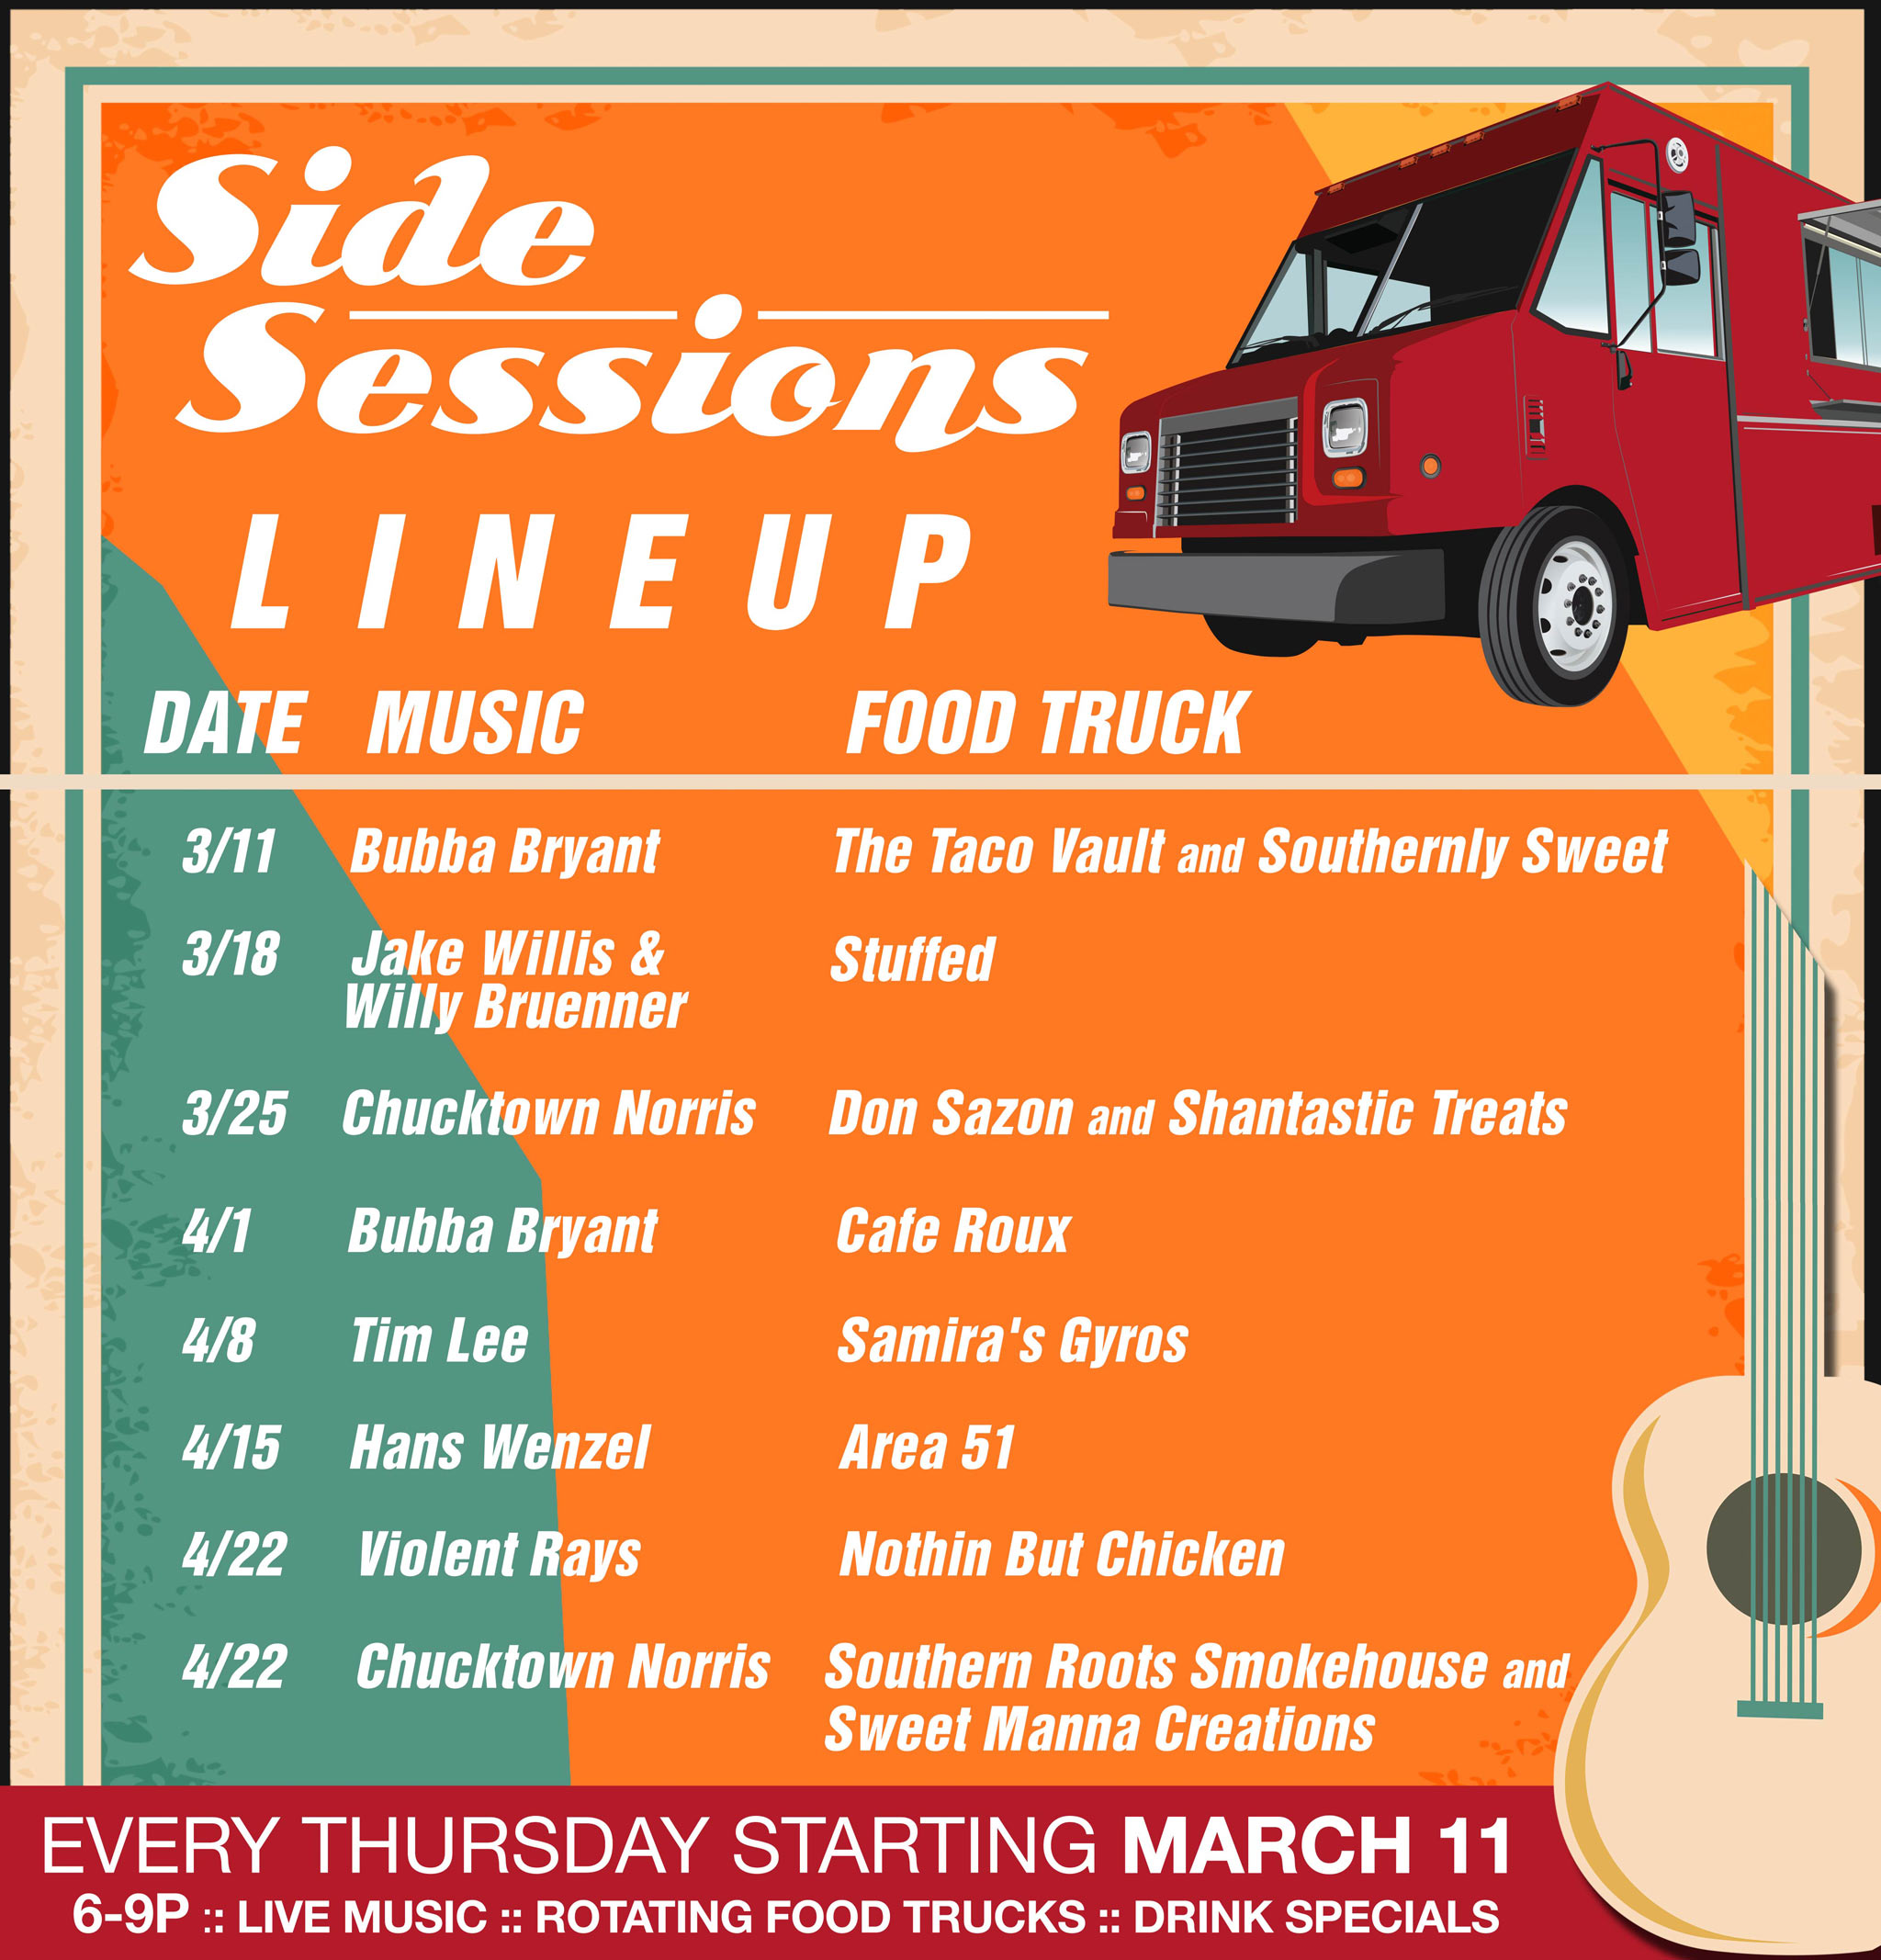 Side Sessions Thursday Lineup